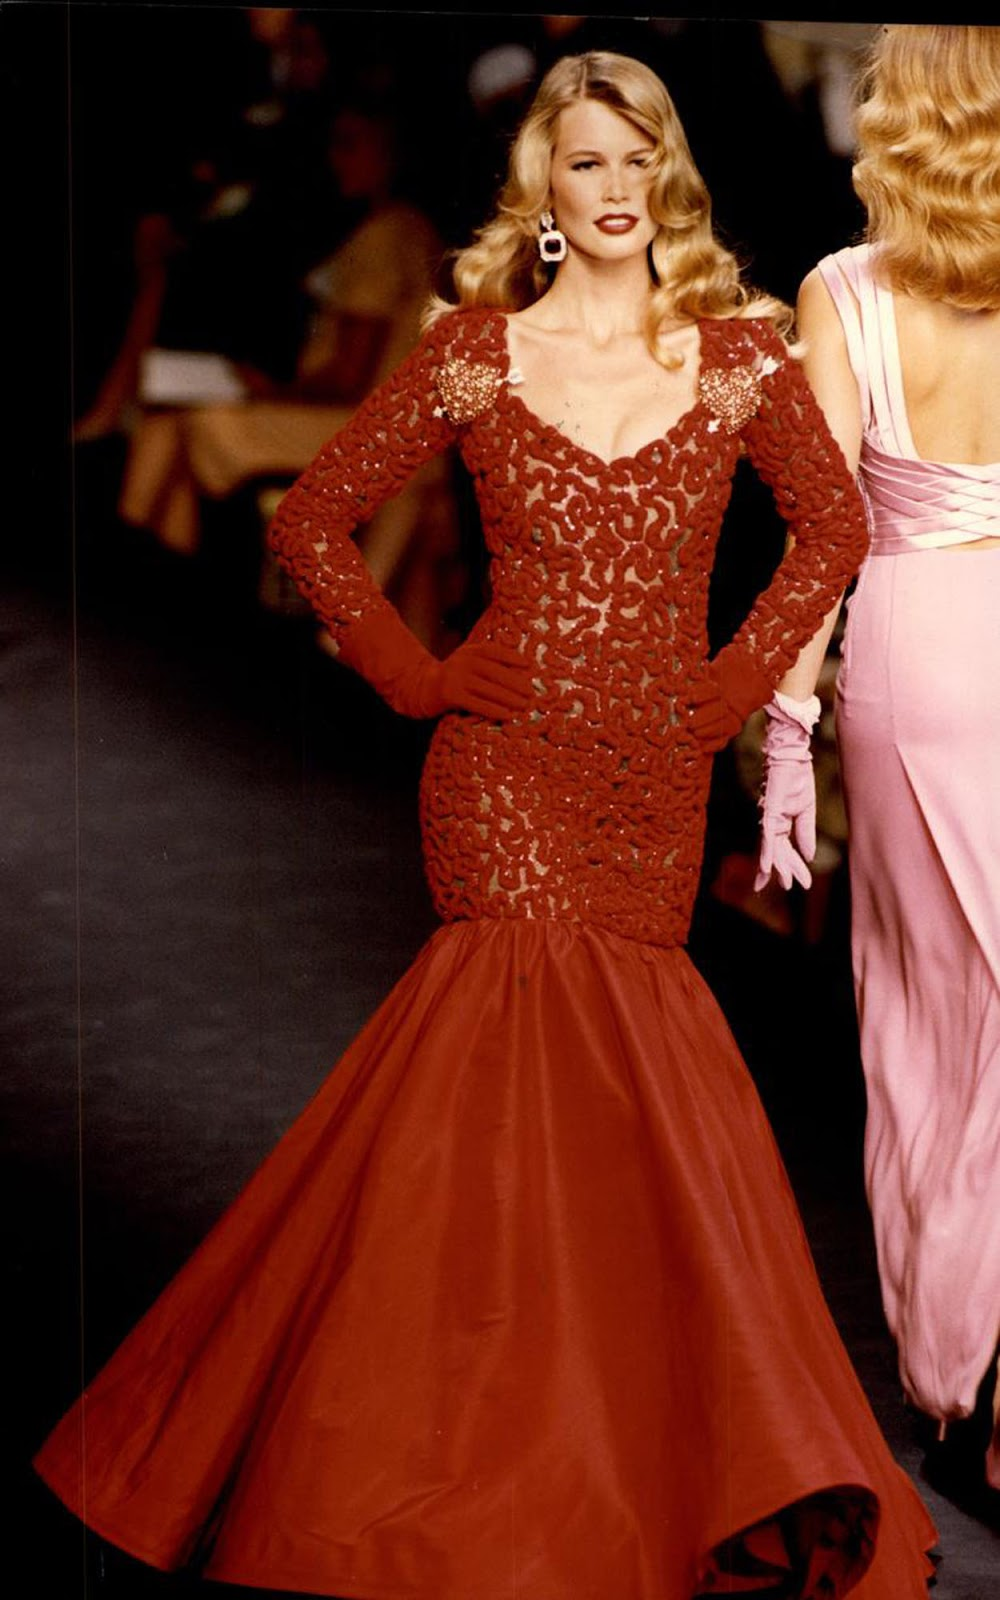 Eniwhere Fashion - Top Models 90's - Claudia Schiffer